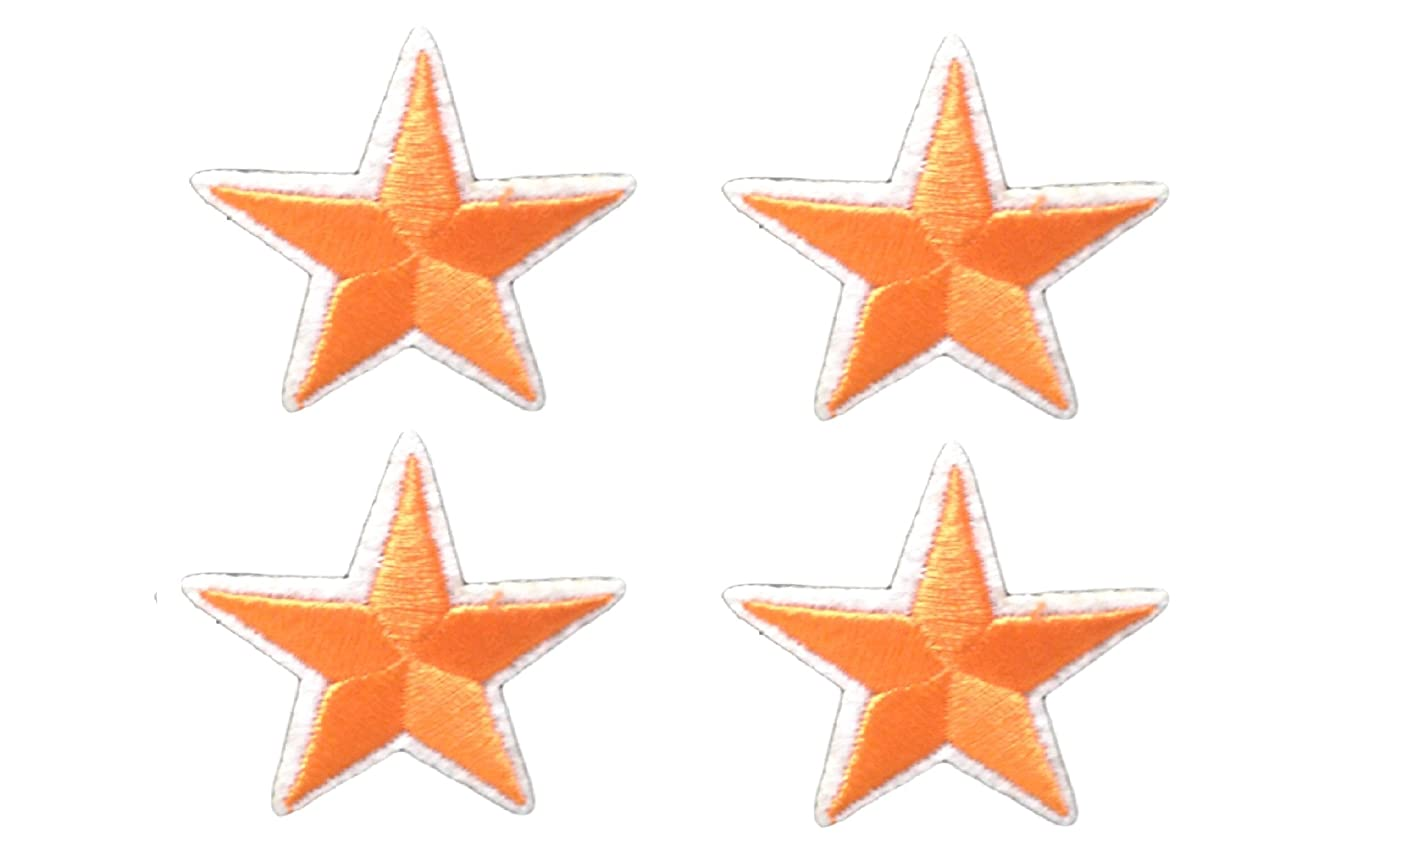 4 small pieces ORANGE STAR Iron On Patch Applique Motif Fabric Children Decal 1.5 x 1.5 inches (3.8 x 3.8 cm)